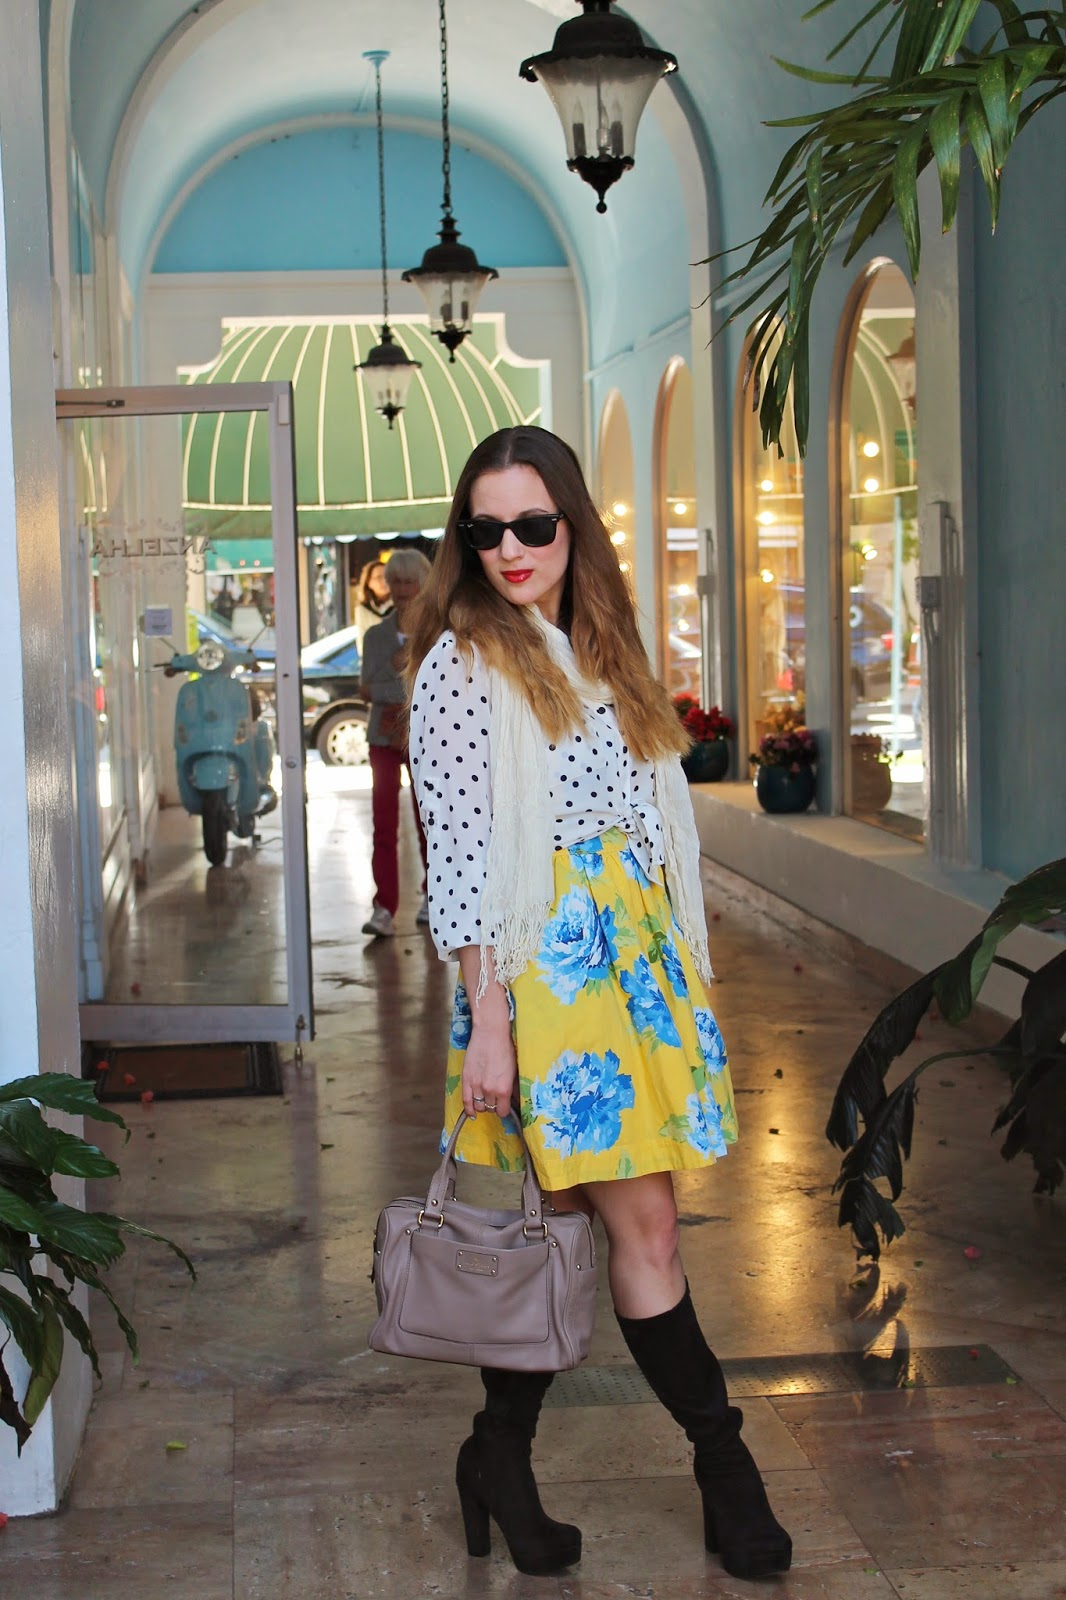 Kate Spade, prep, floral, polka dot, palm beach, fashion blog, Abercrombie&Fitch, Nordstrom, BCBGeneration, floral,